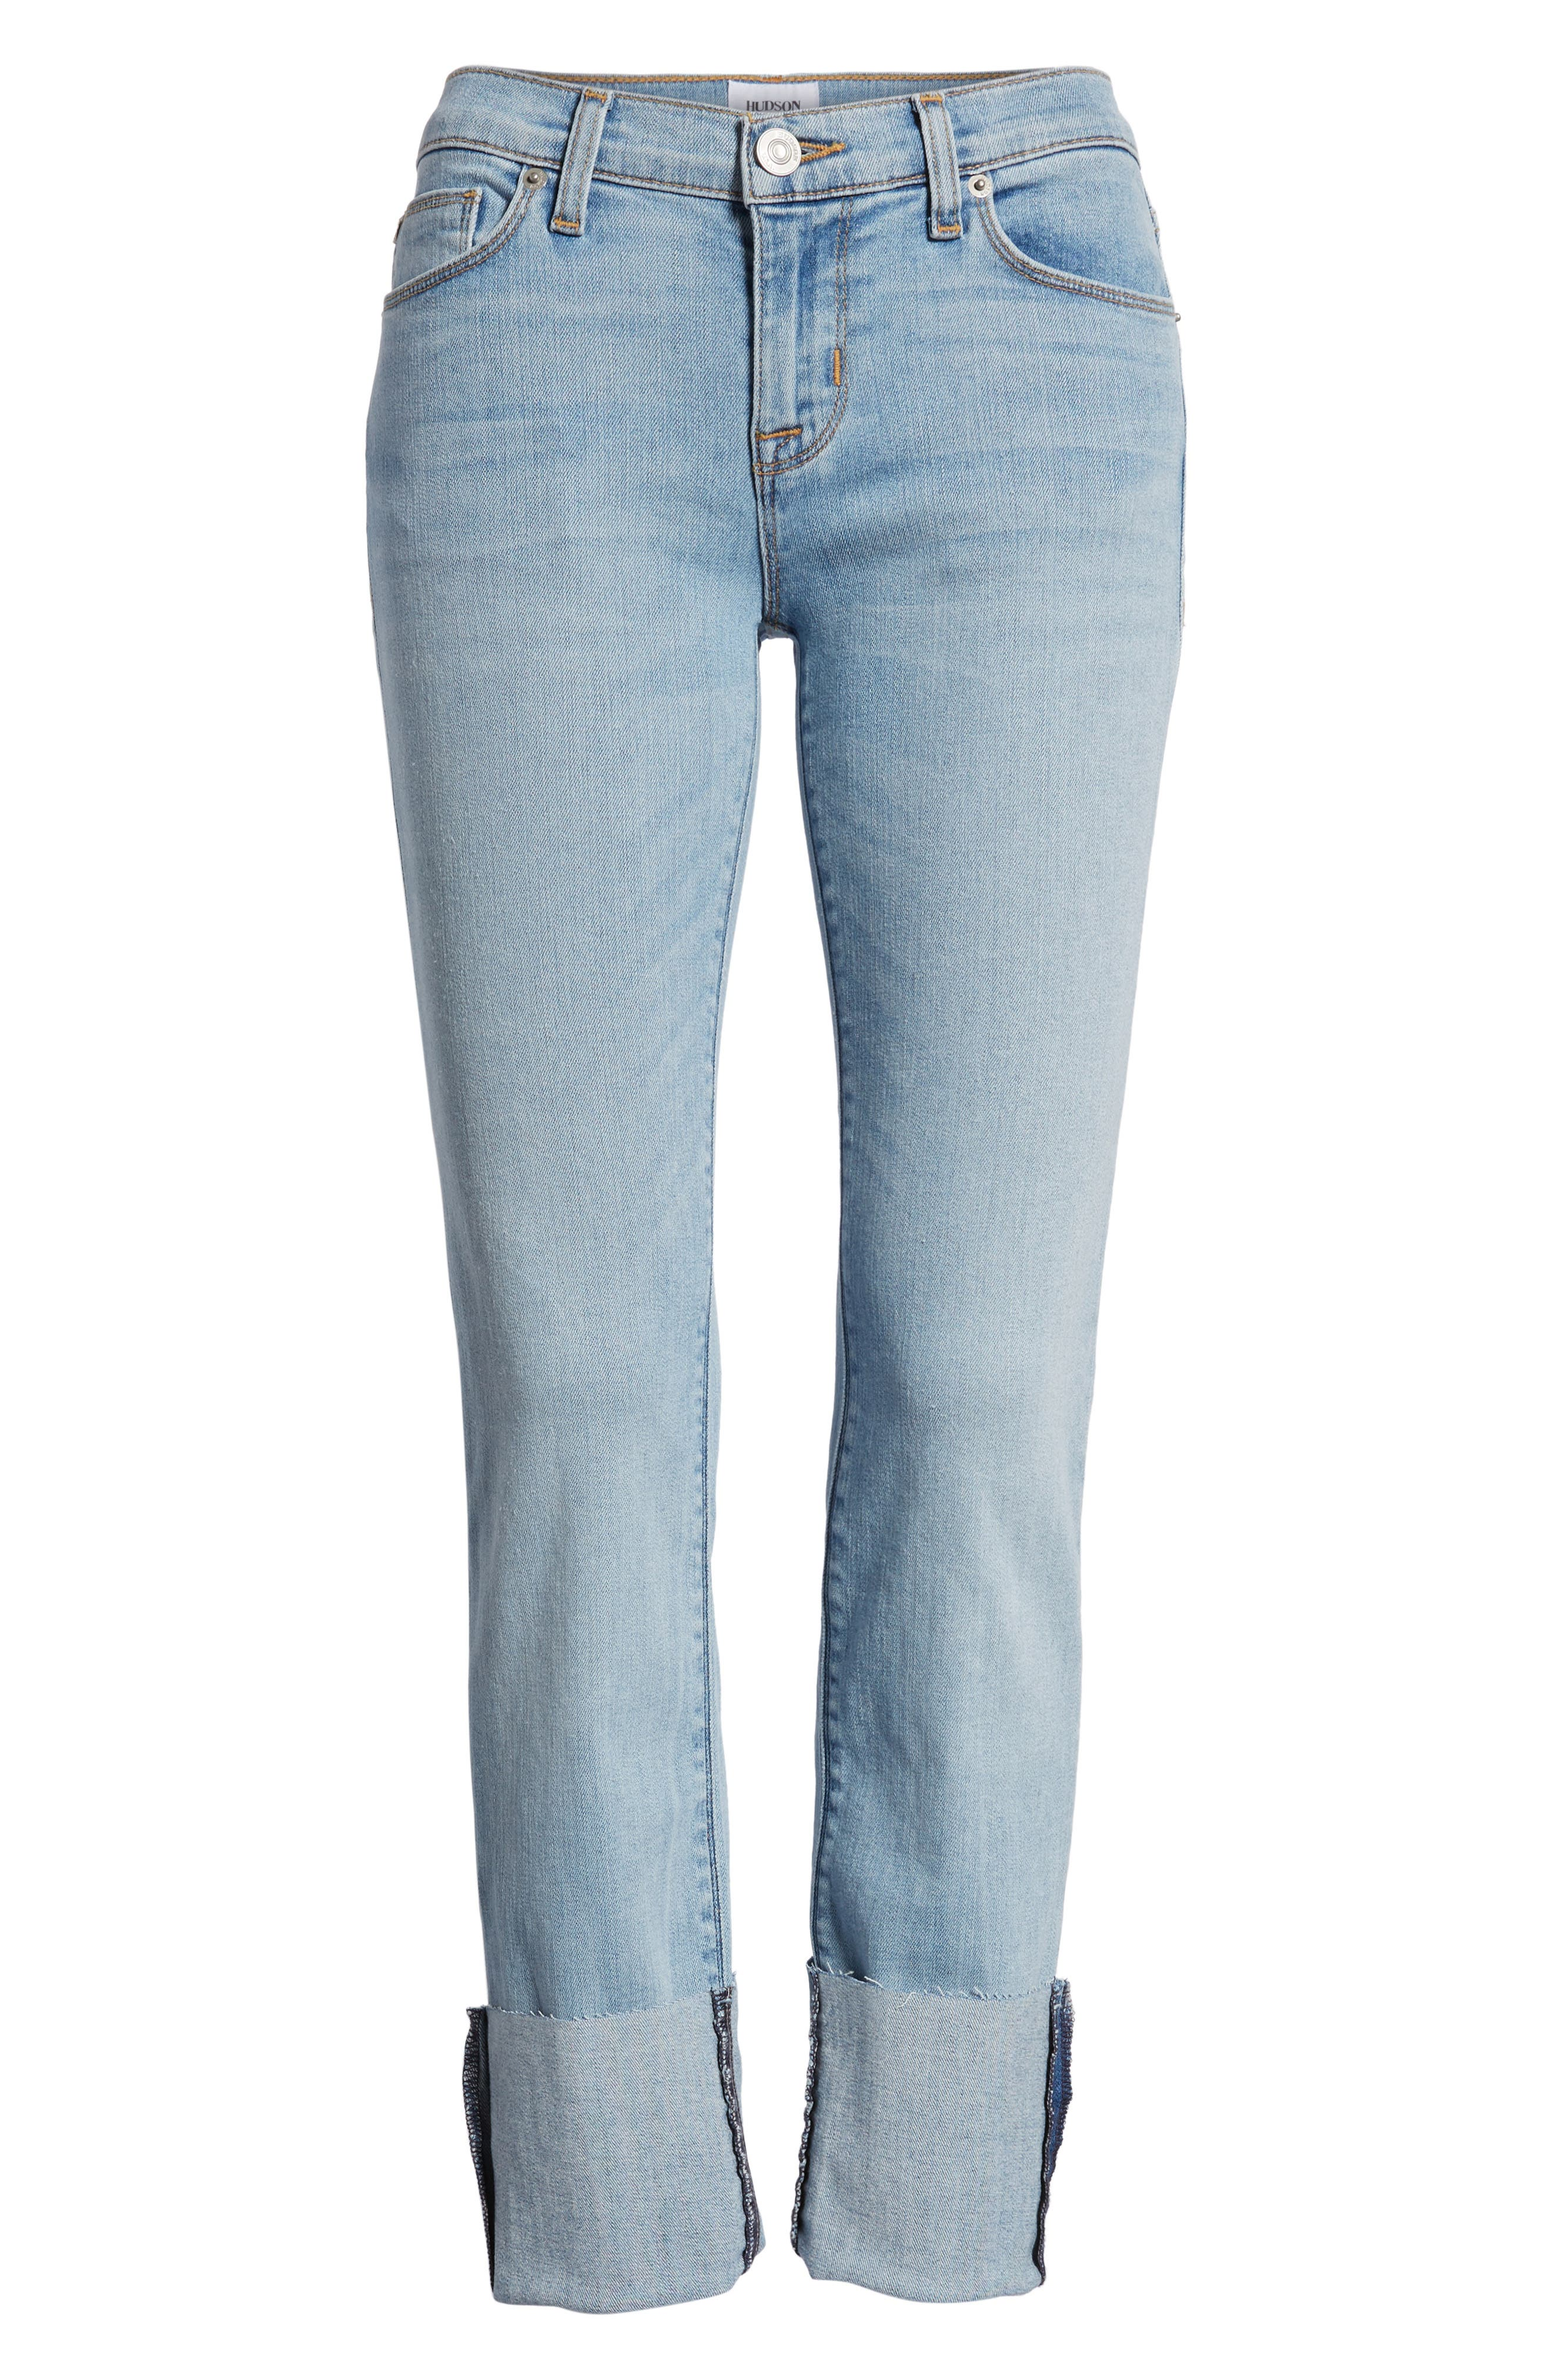 Tally Cuffed Crop Skinny Jeans,                             Alternate thumbnail 19, color,